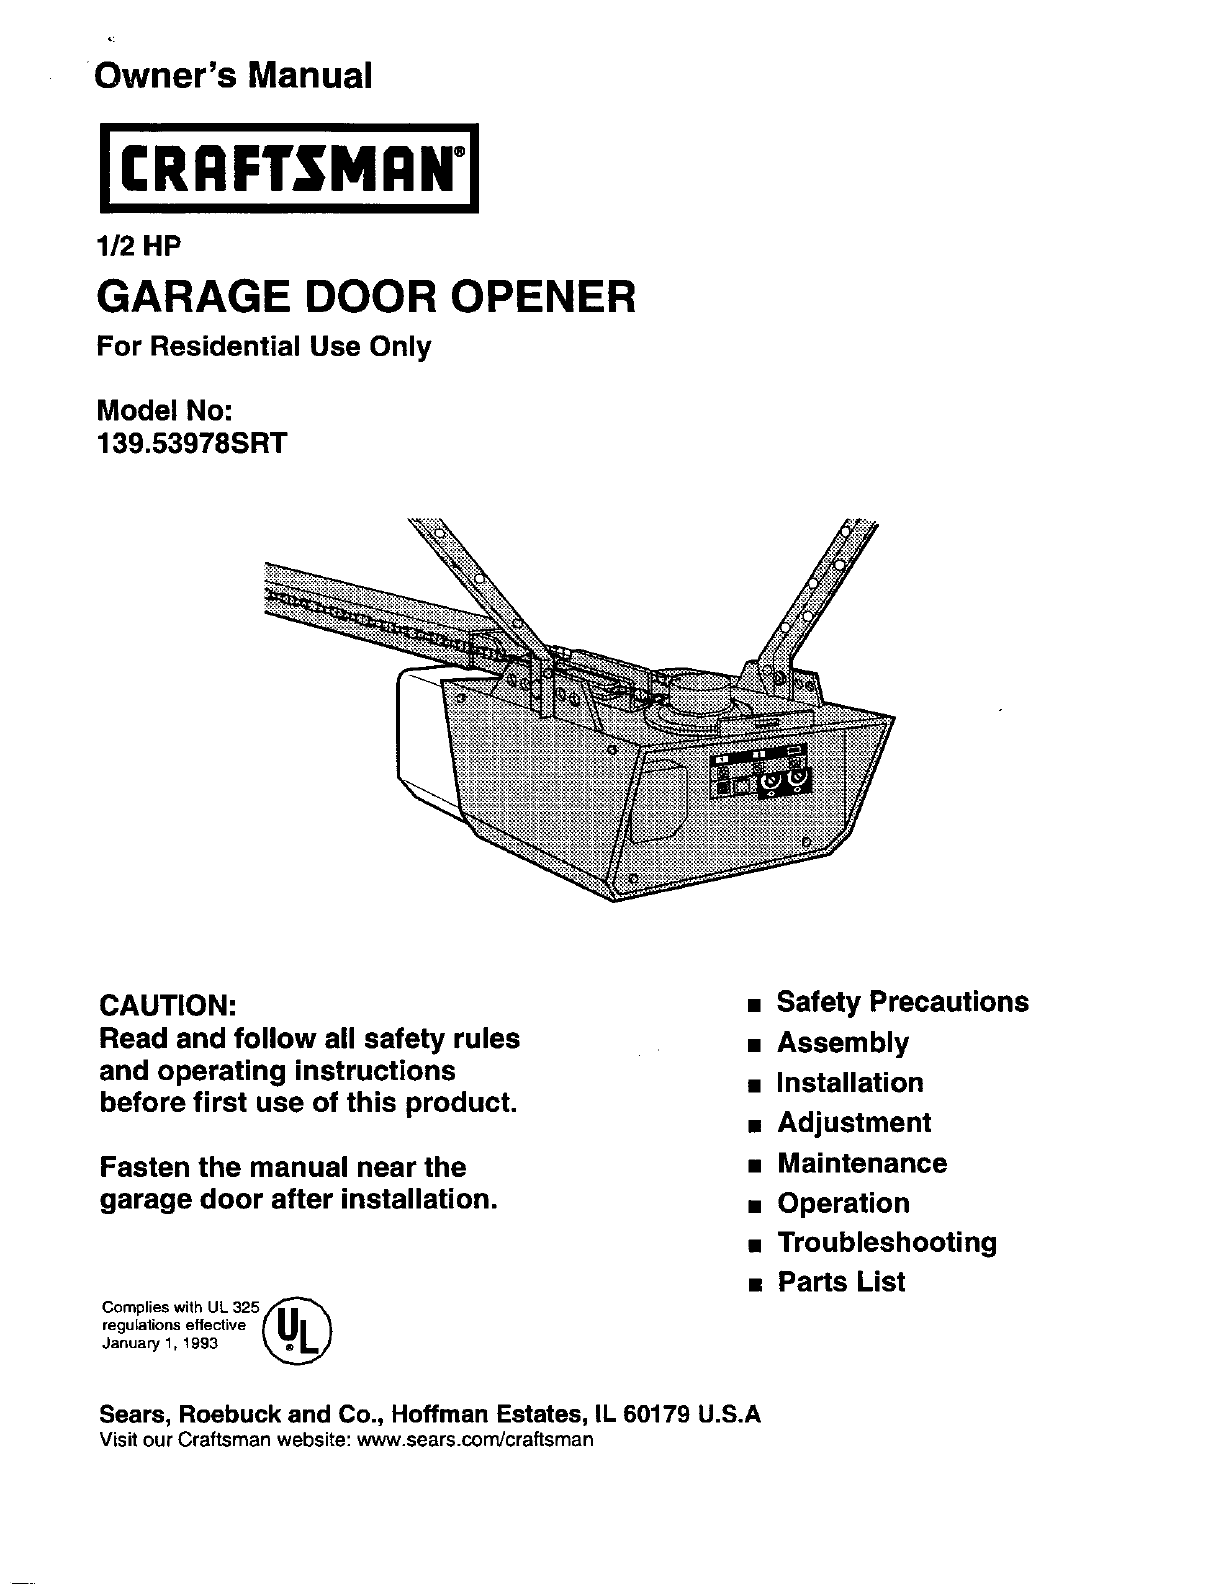 0f05b938 d0cb 4872 aeee 96ef63eab4f3 bg1 craftsman garage door opener 139 53978srt user guide craftsman garage door wiring diagram at virtualis.co